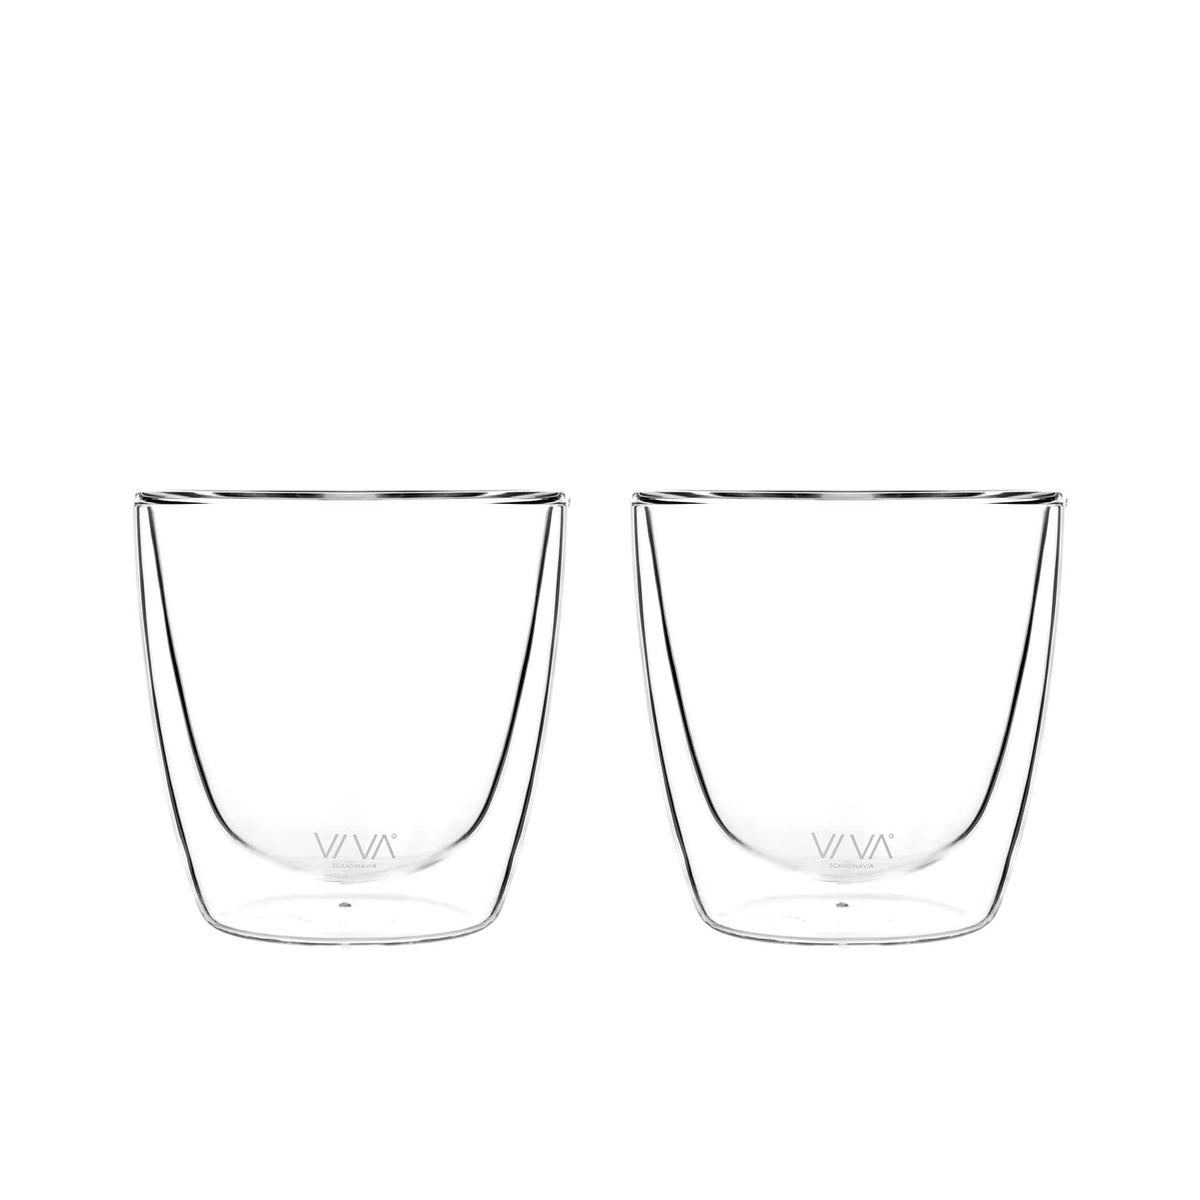 Lauren Double Walled Glasses - Set of 2